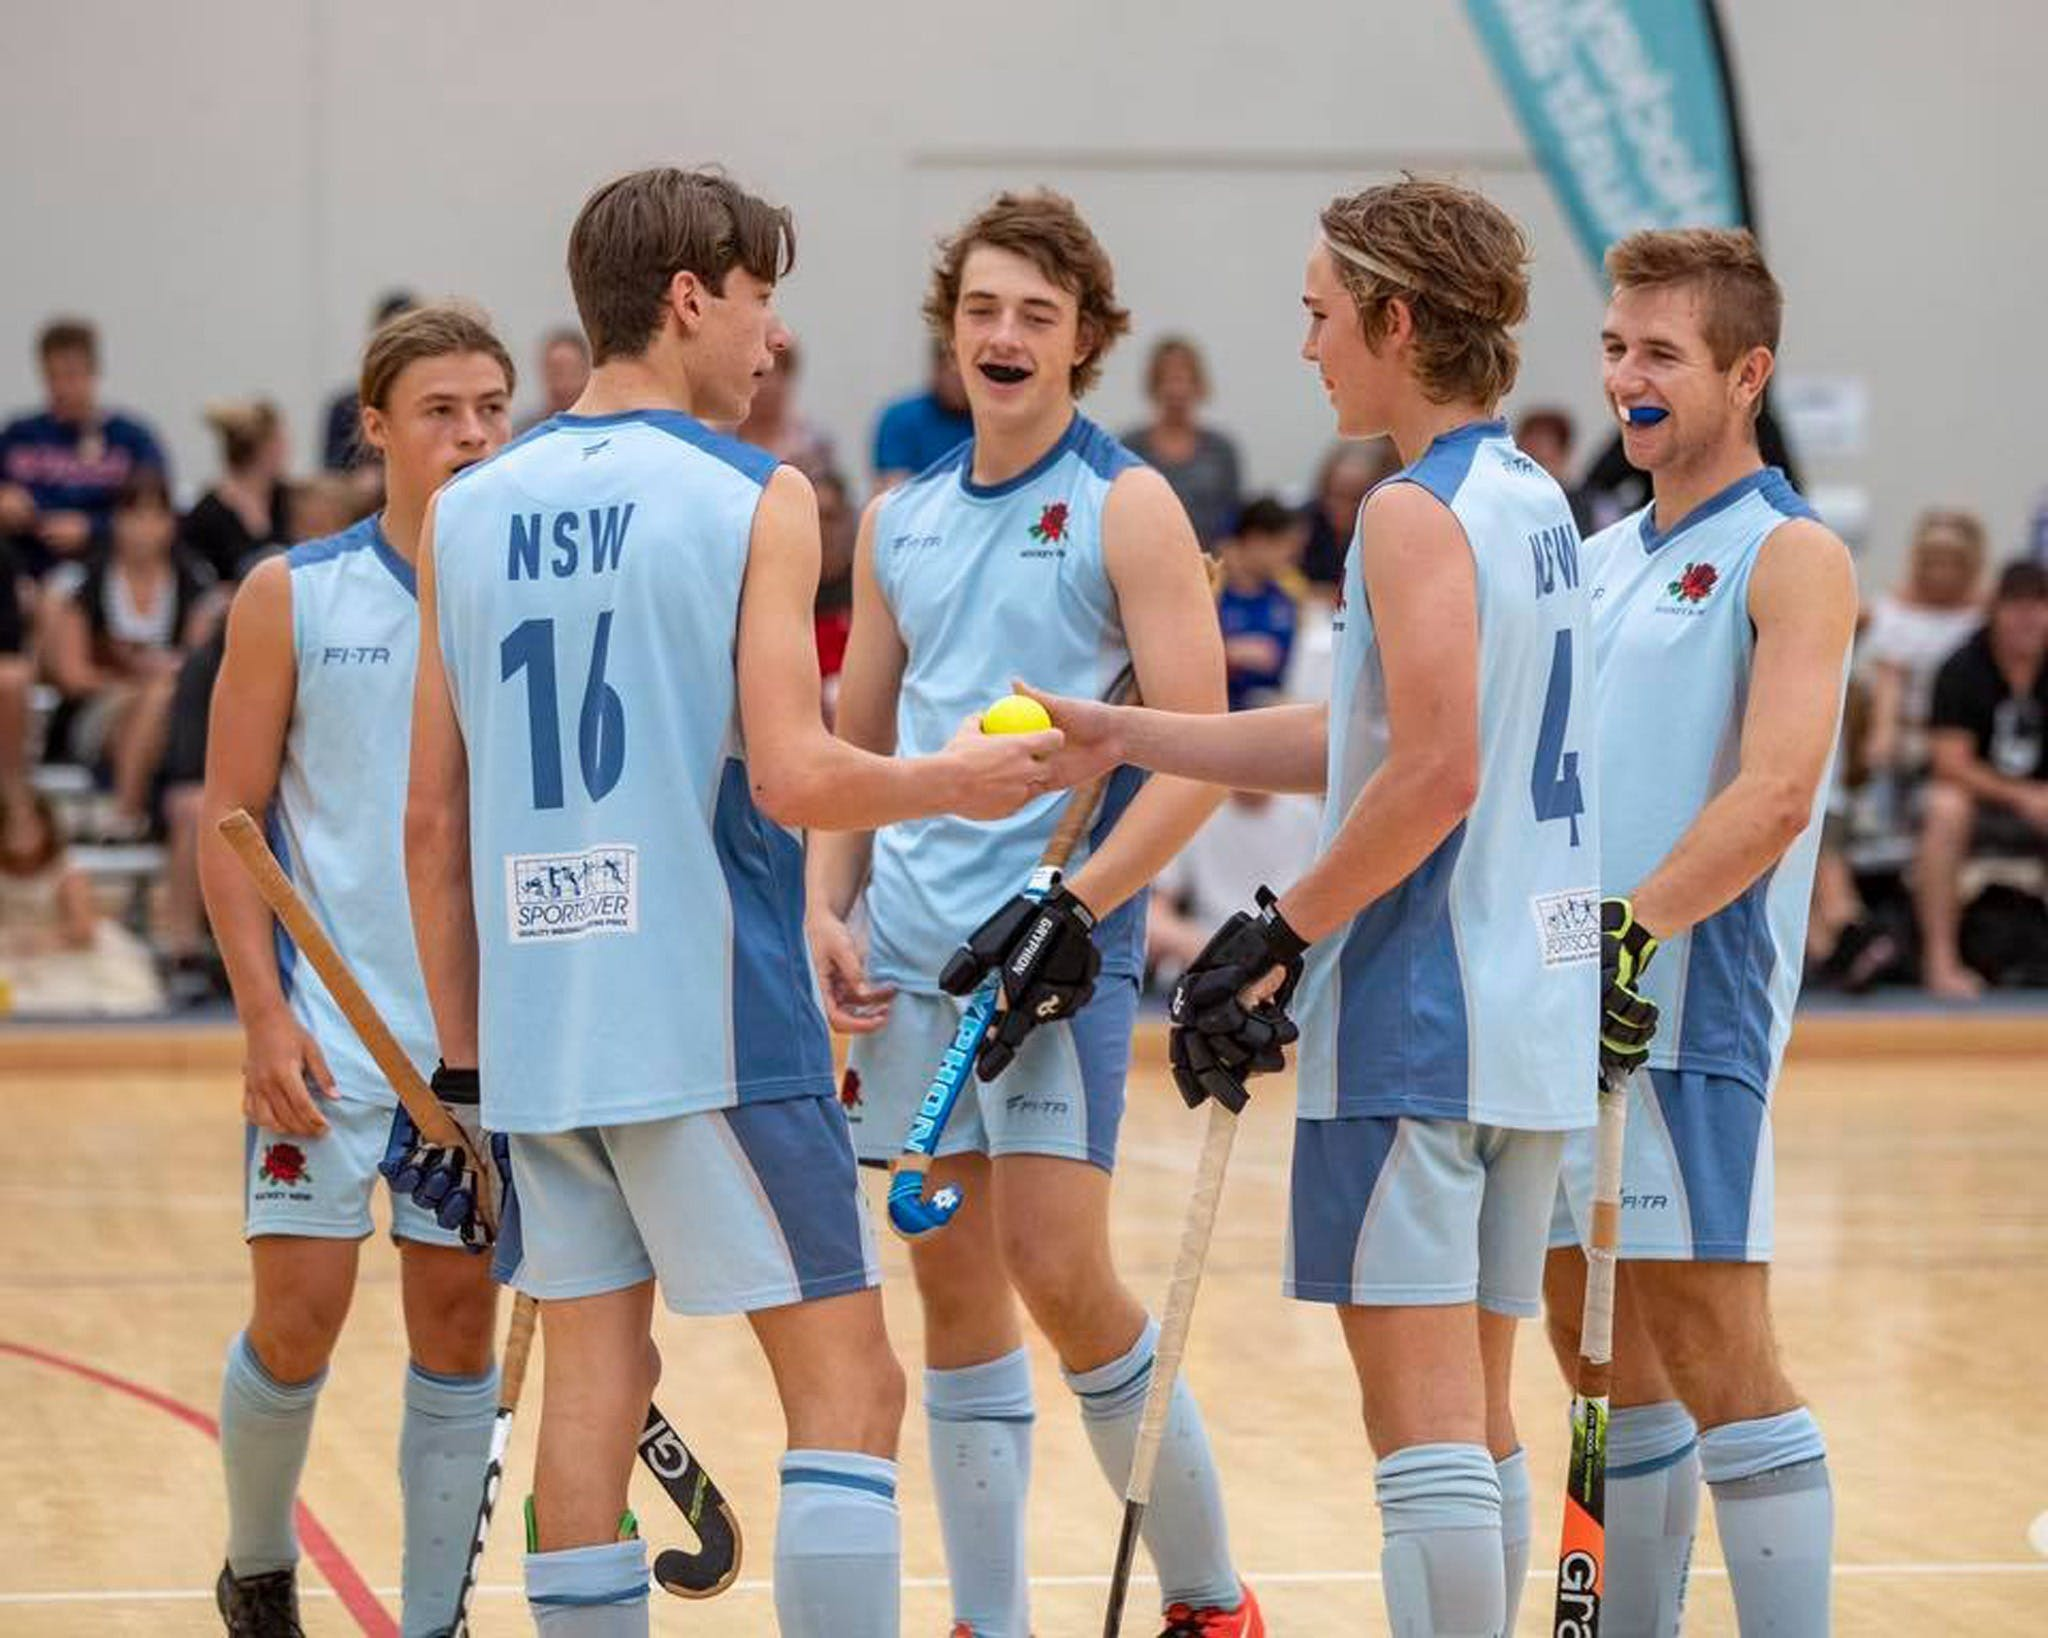 Hockey NSW Indoor State Championship  Open Men - Lightning Ridge Tourism